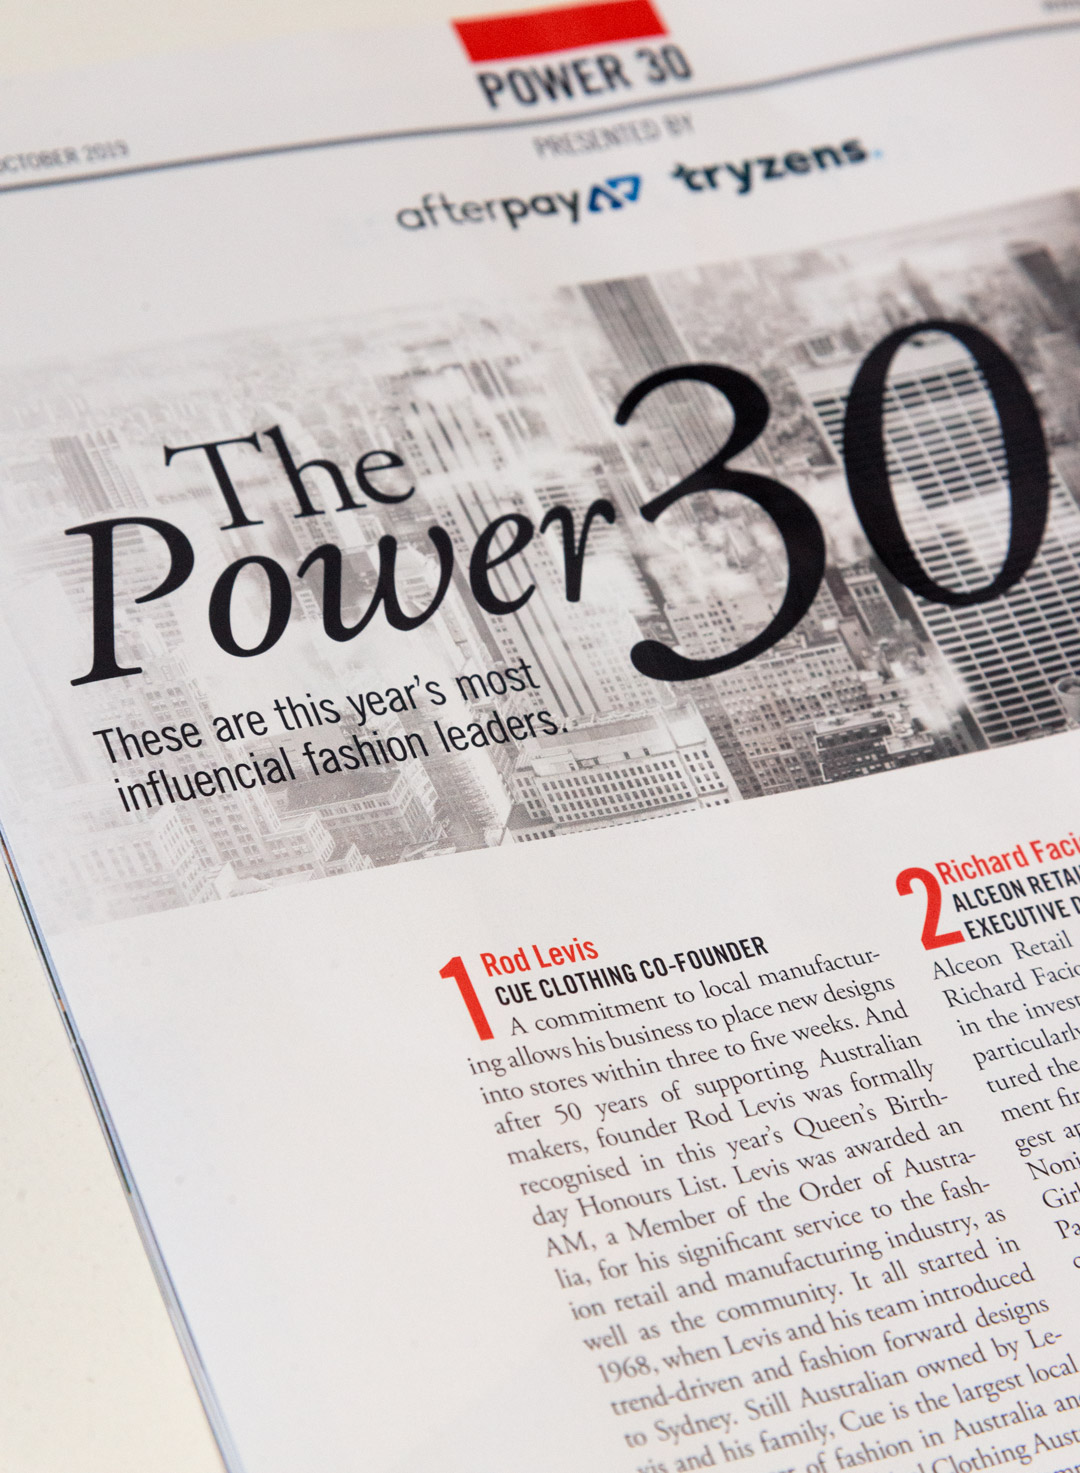 Cue Founder, Rodney Levis, awarded top position in Ragtrader's 'Power 30' list!